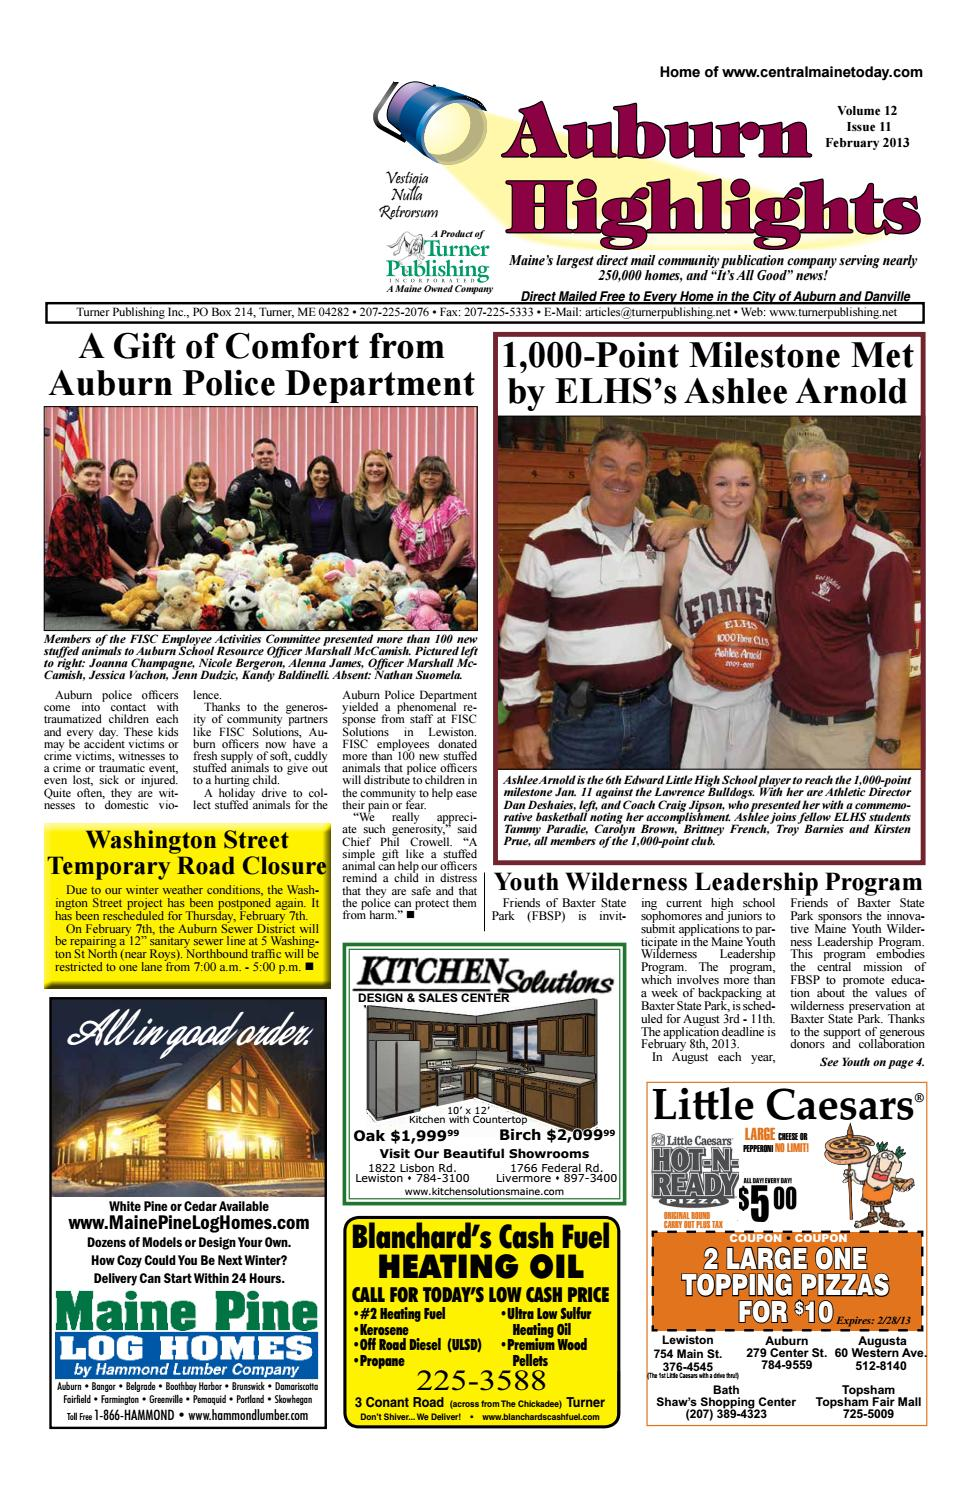 Auburn Highlights February 2013 by Turner Publishing, Inc